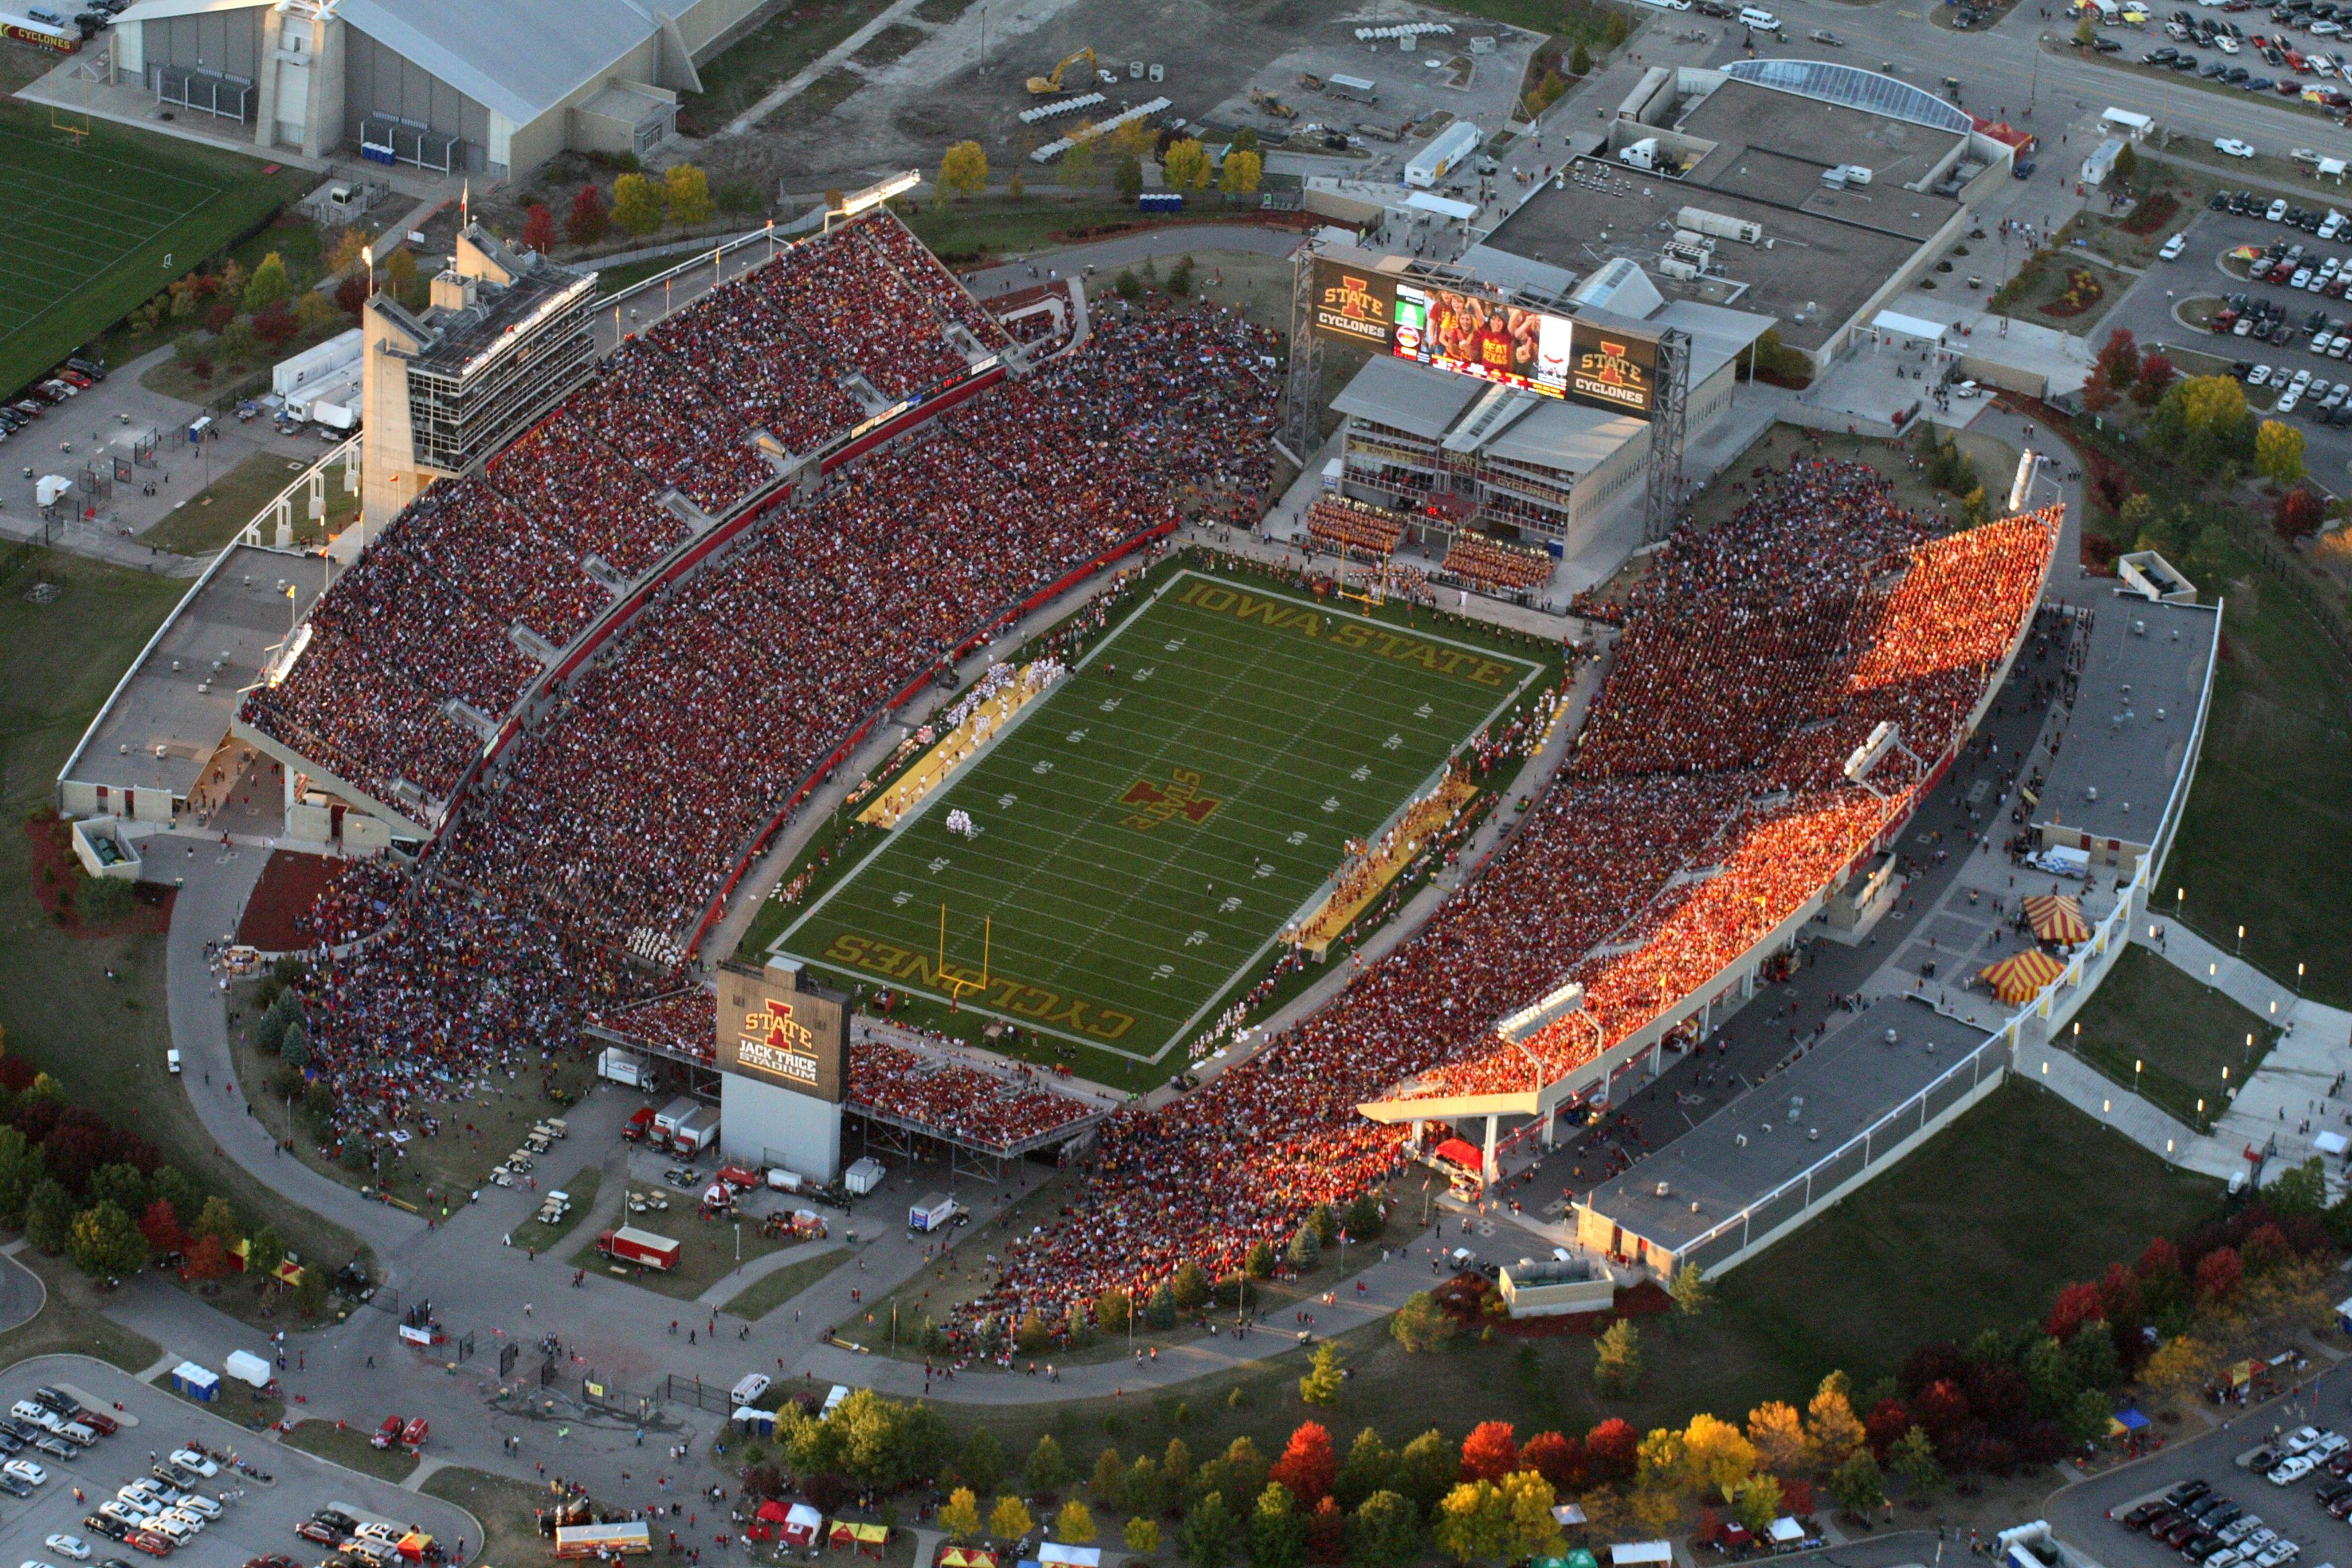 The Best Saturday S Are At Jack Trice Stadium Countdowntokickoff And Cyclonefb Iowa State Football Iowa State Cyclones Football Iowa State